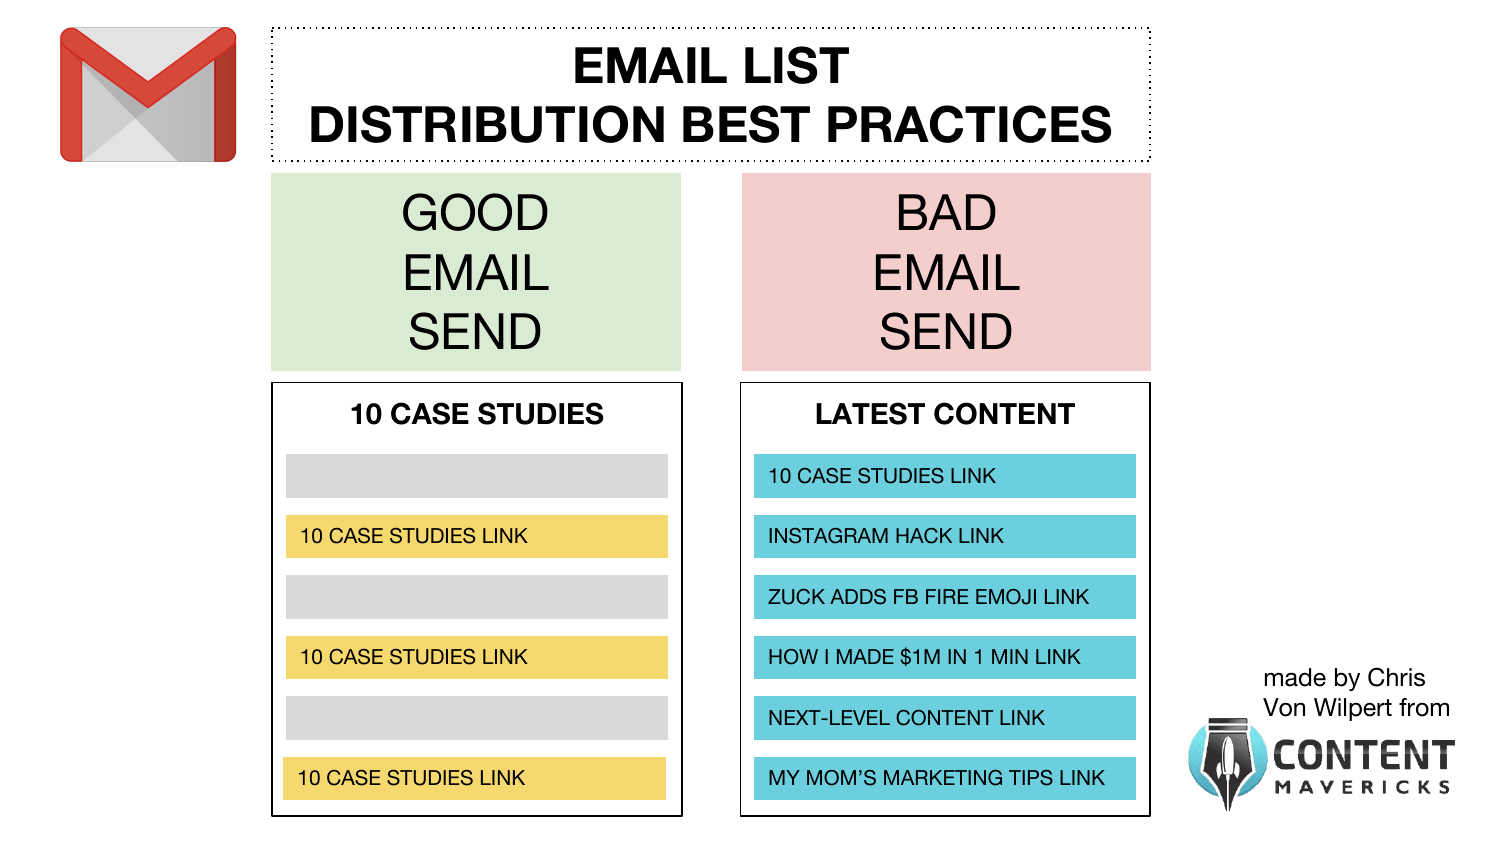 email list content distribution best practices image